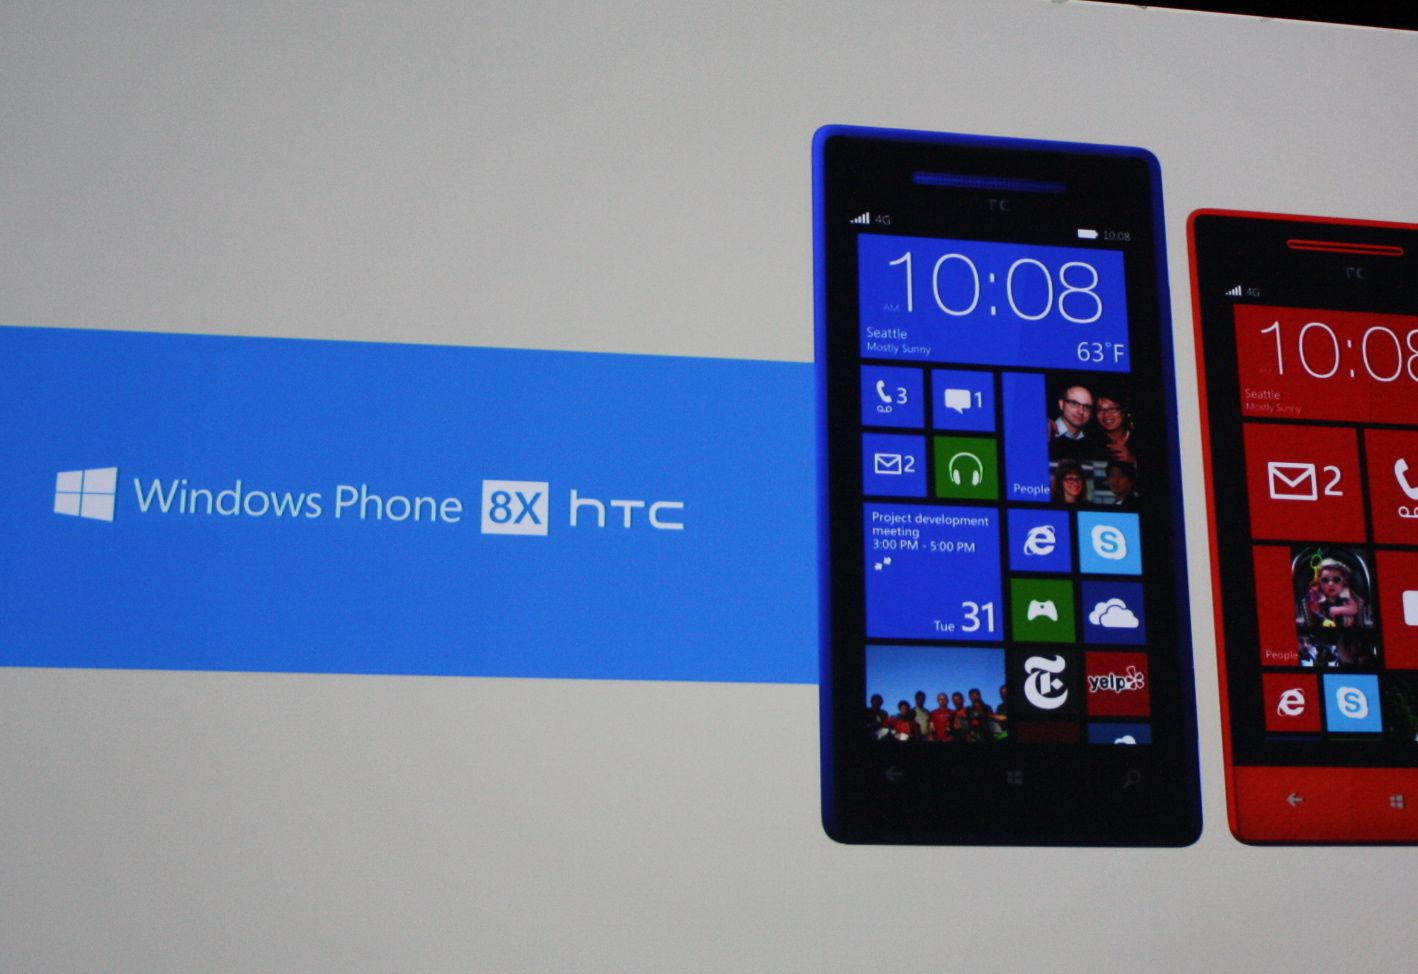 HTC, Microsoft announce two Windows Phone 8 devices   Ars ...